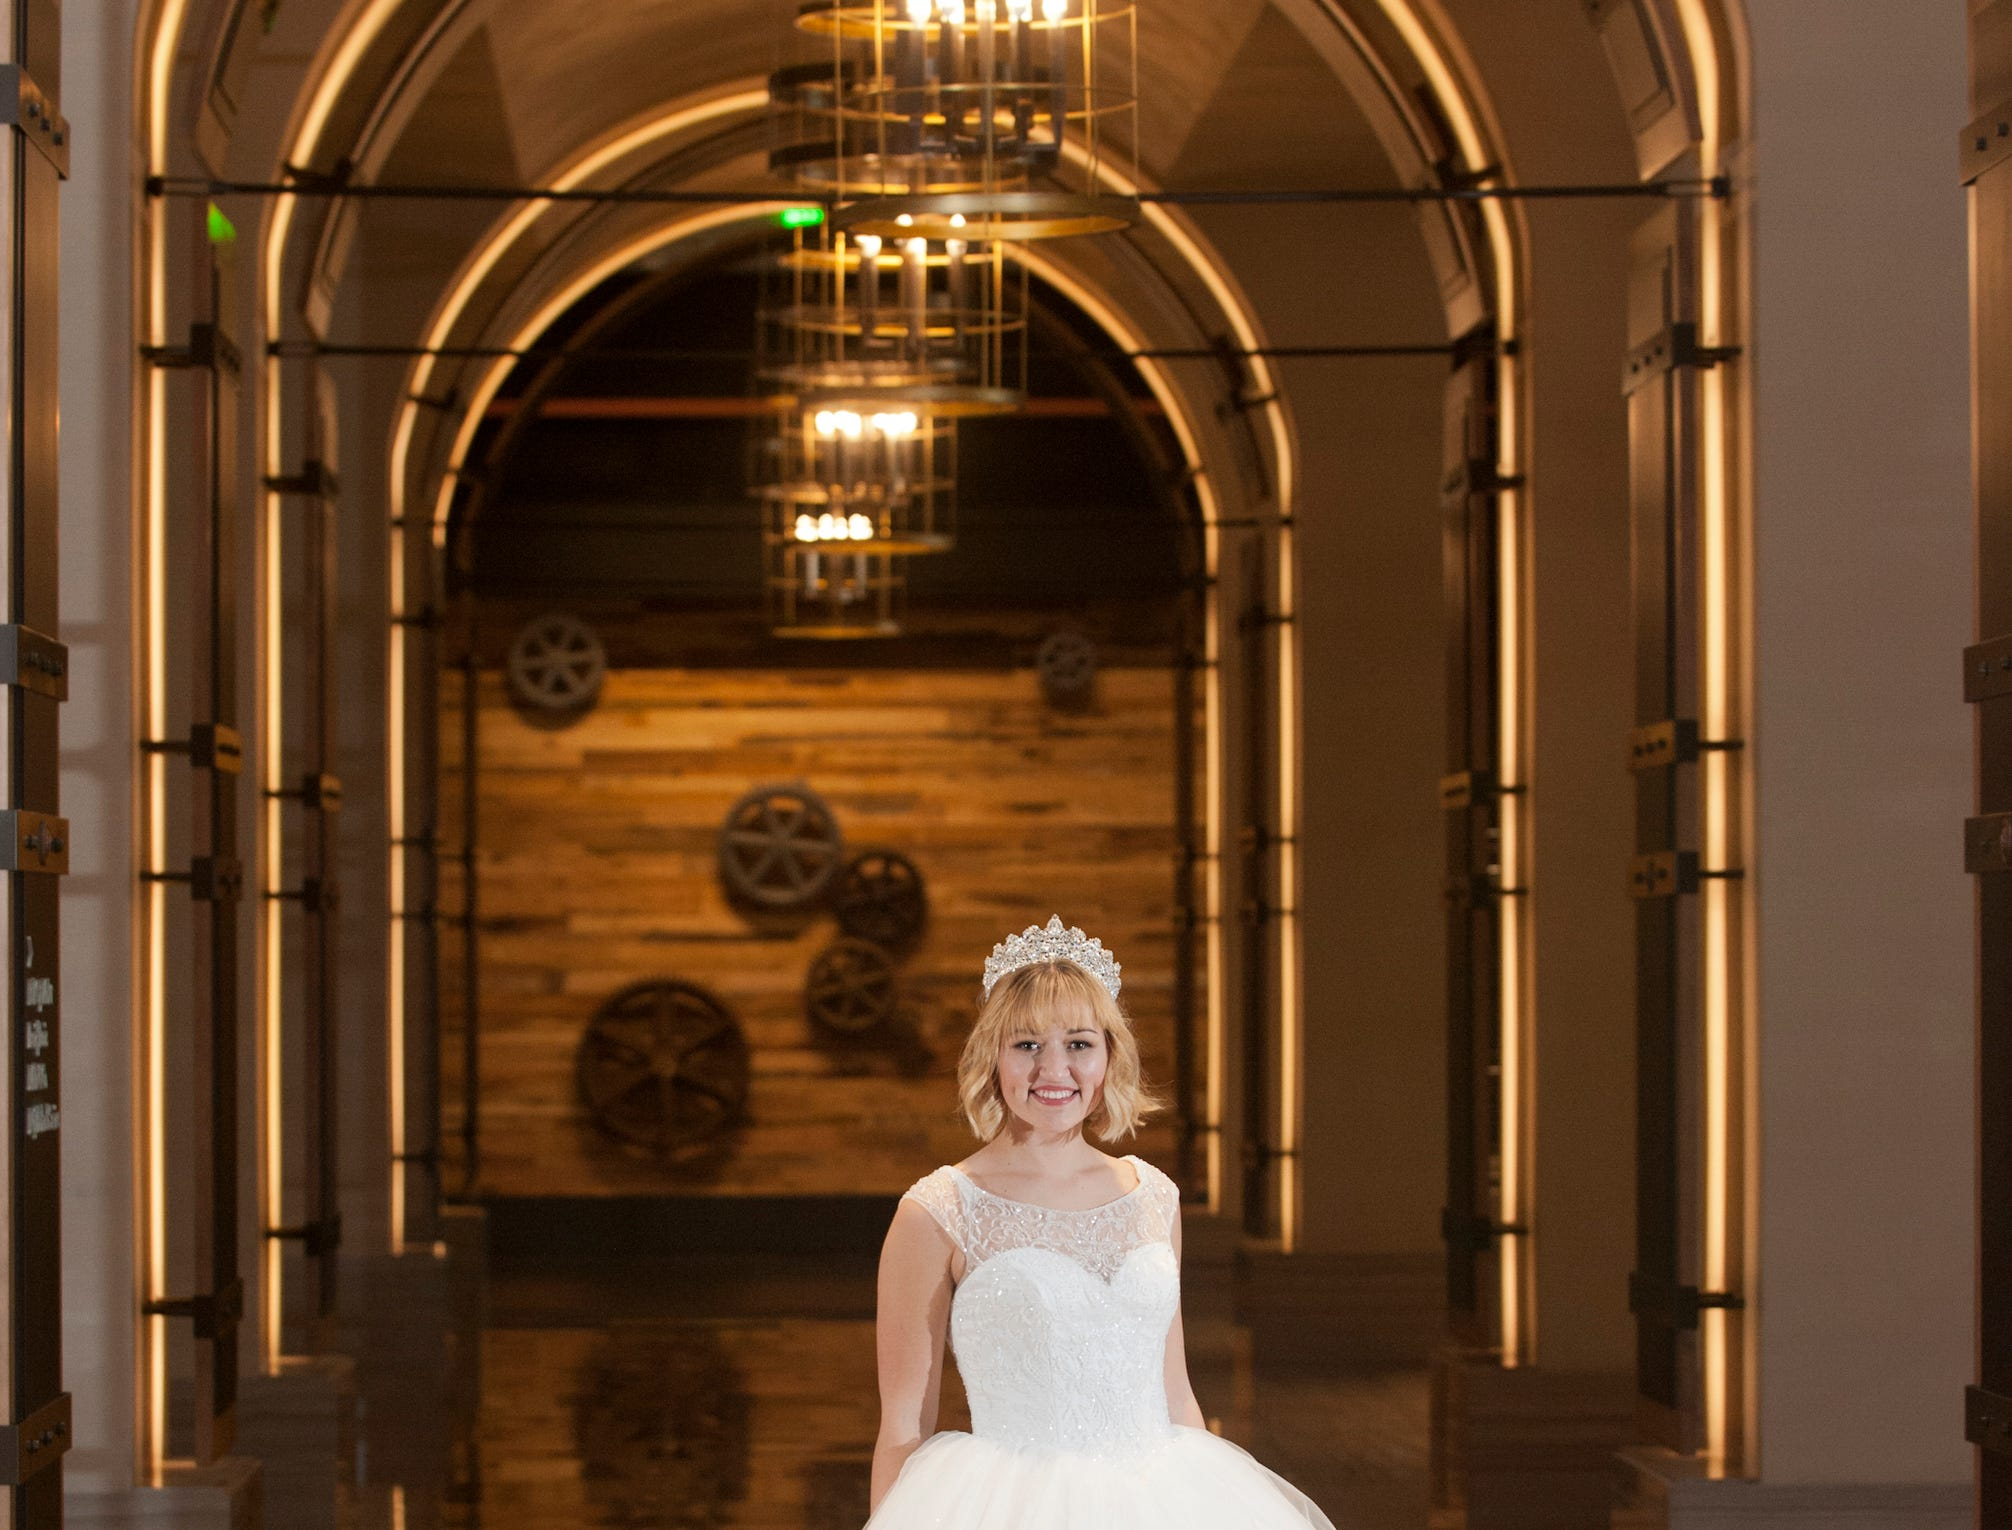 Kentucky Derby Festival Kelsey Sutton, 22, of Brandenburg, Kentucky, is a Centre College senior majoring in mathematics and minoring in education. She posed in the lobby of the Omni Louisville Hotel. 06 January 2019